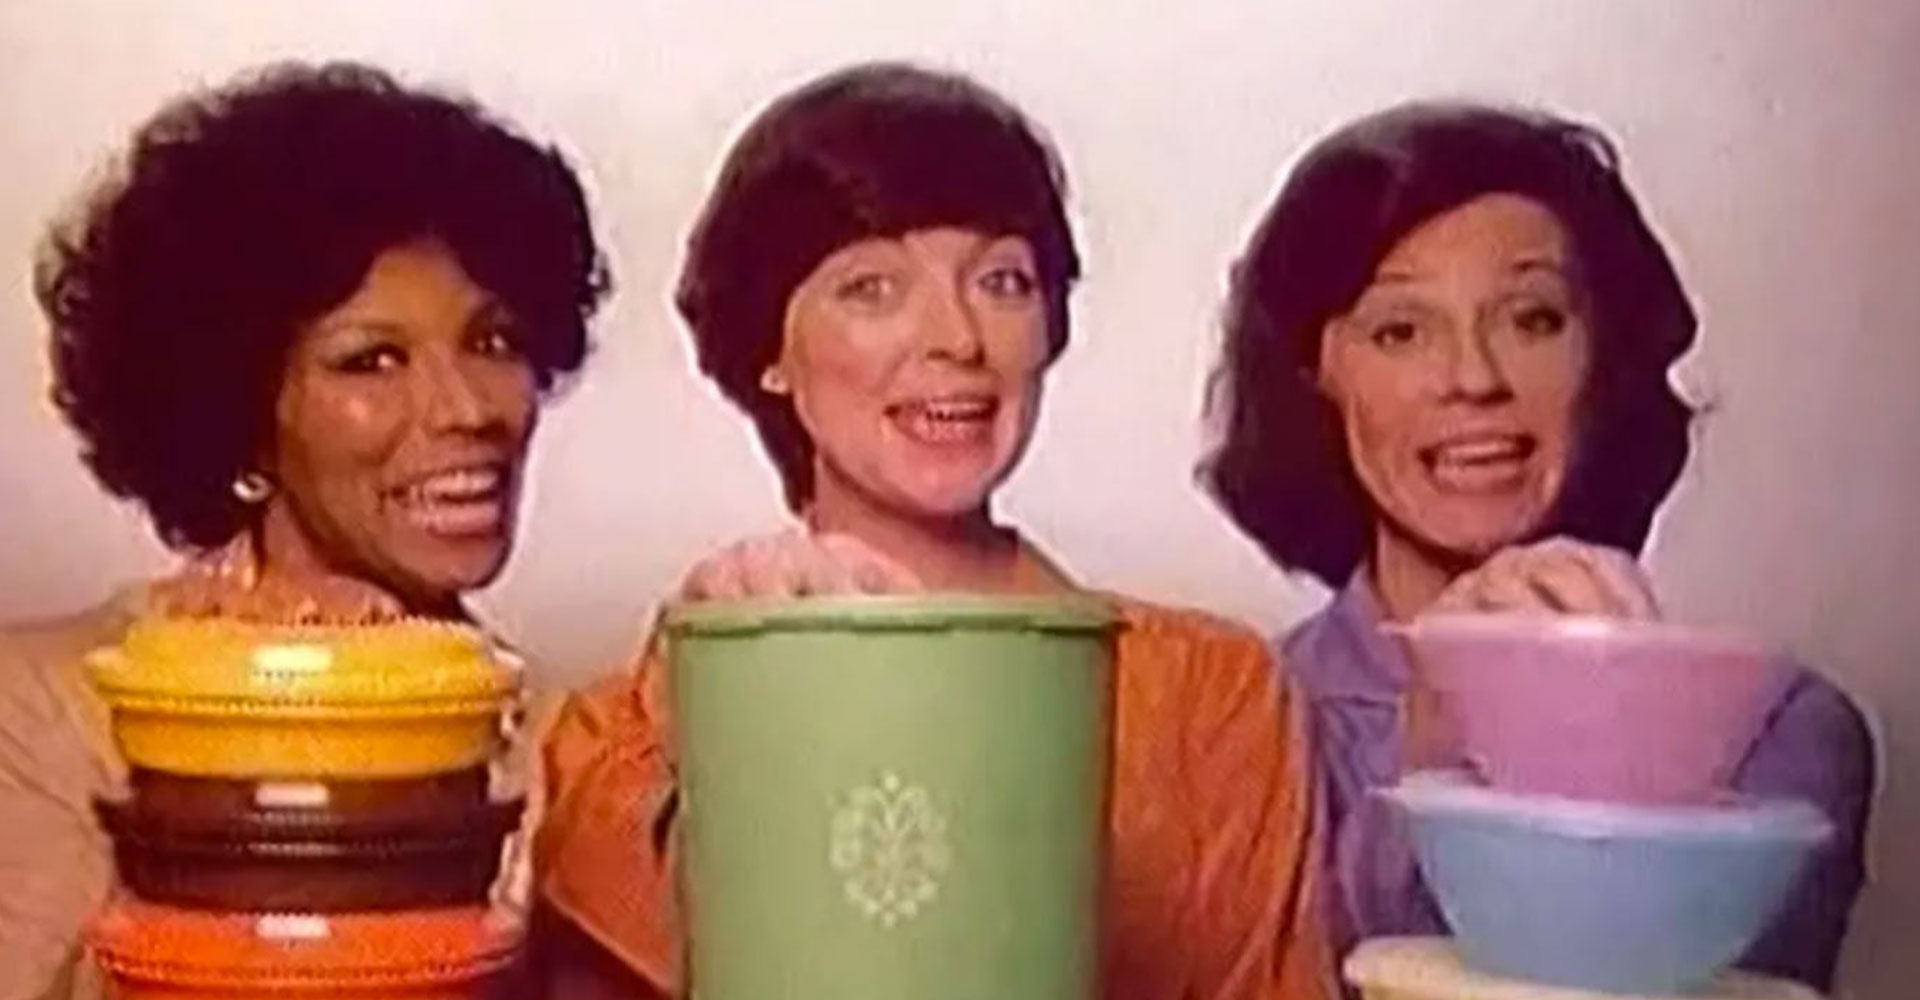 women selling Tupperware 1980s